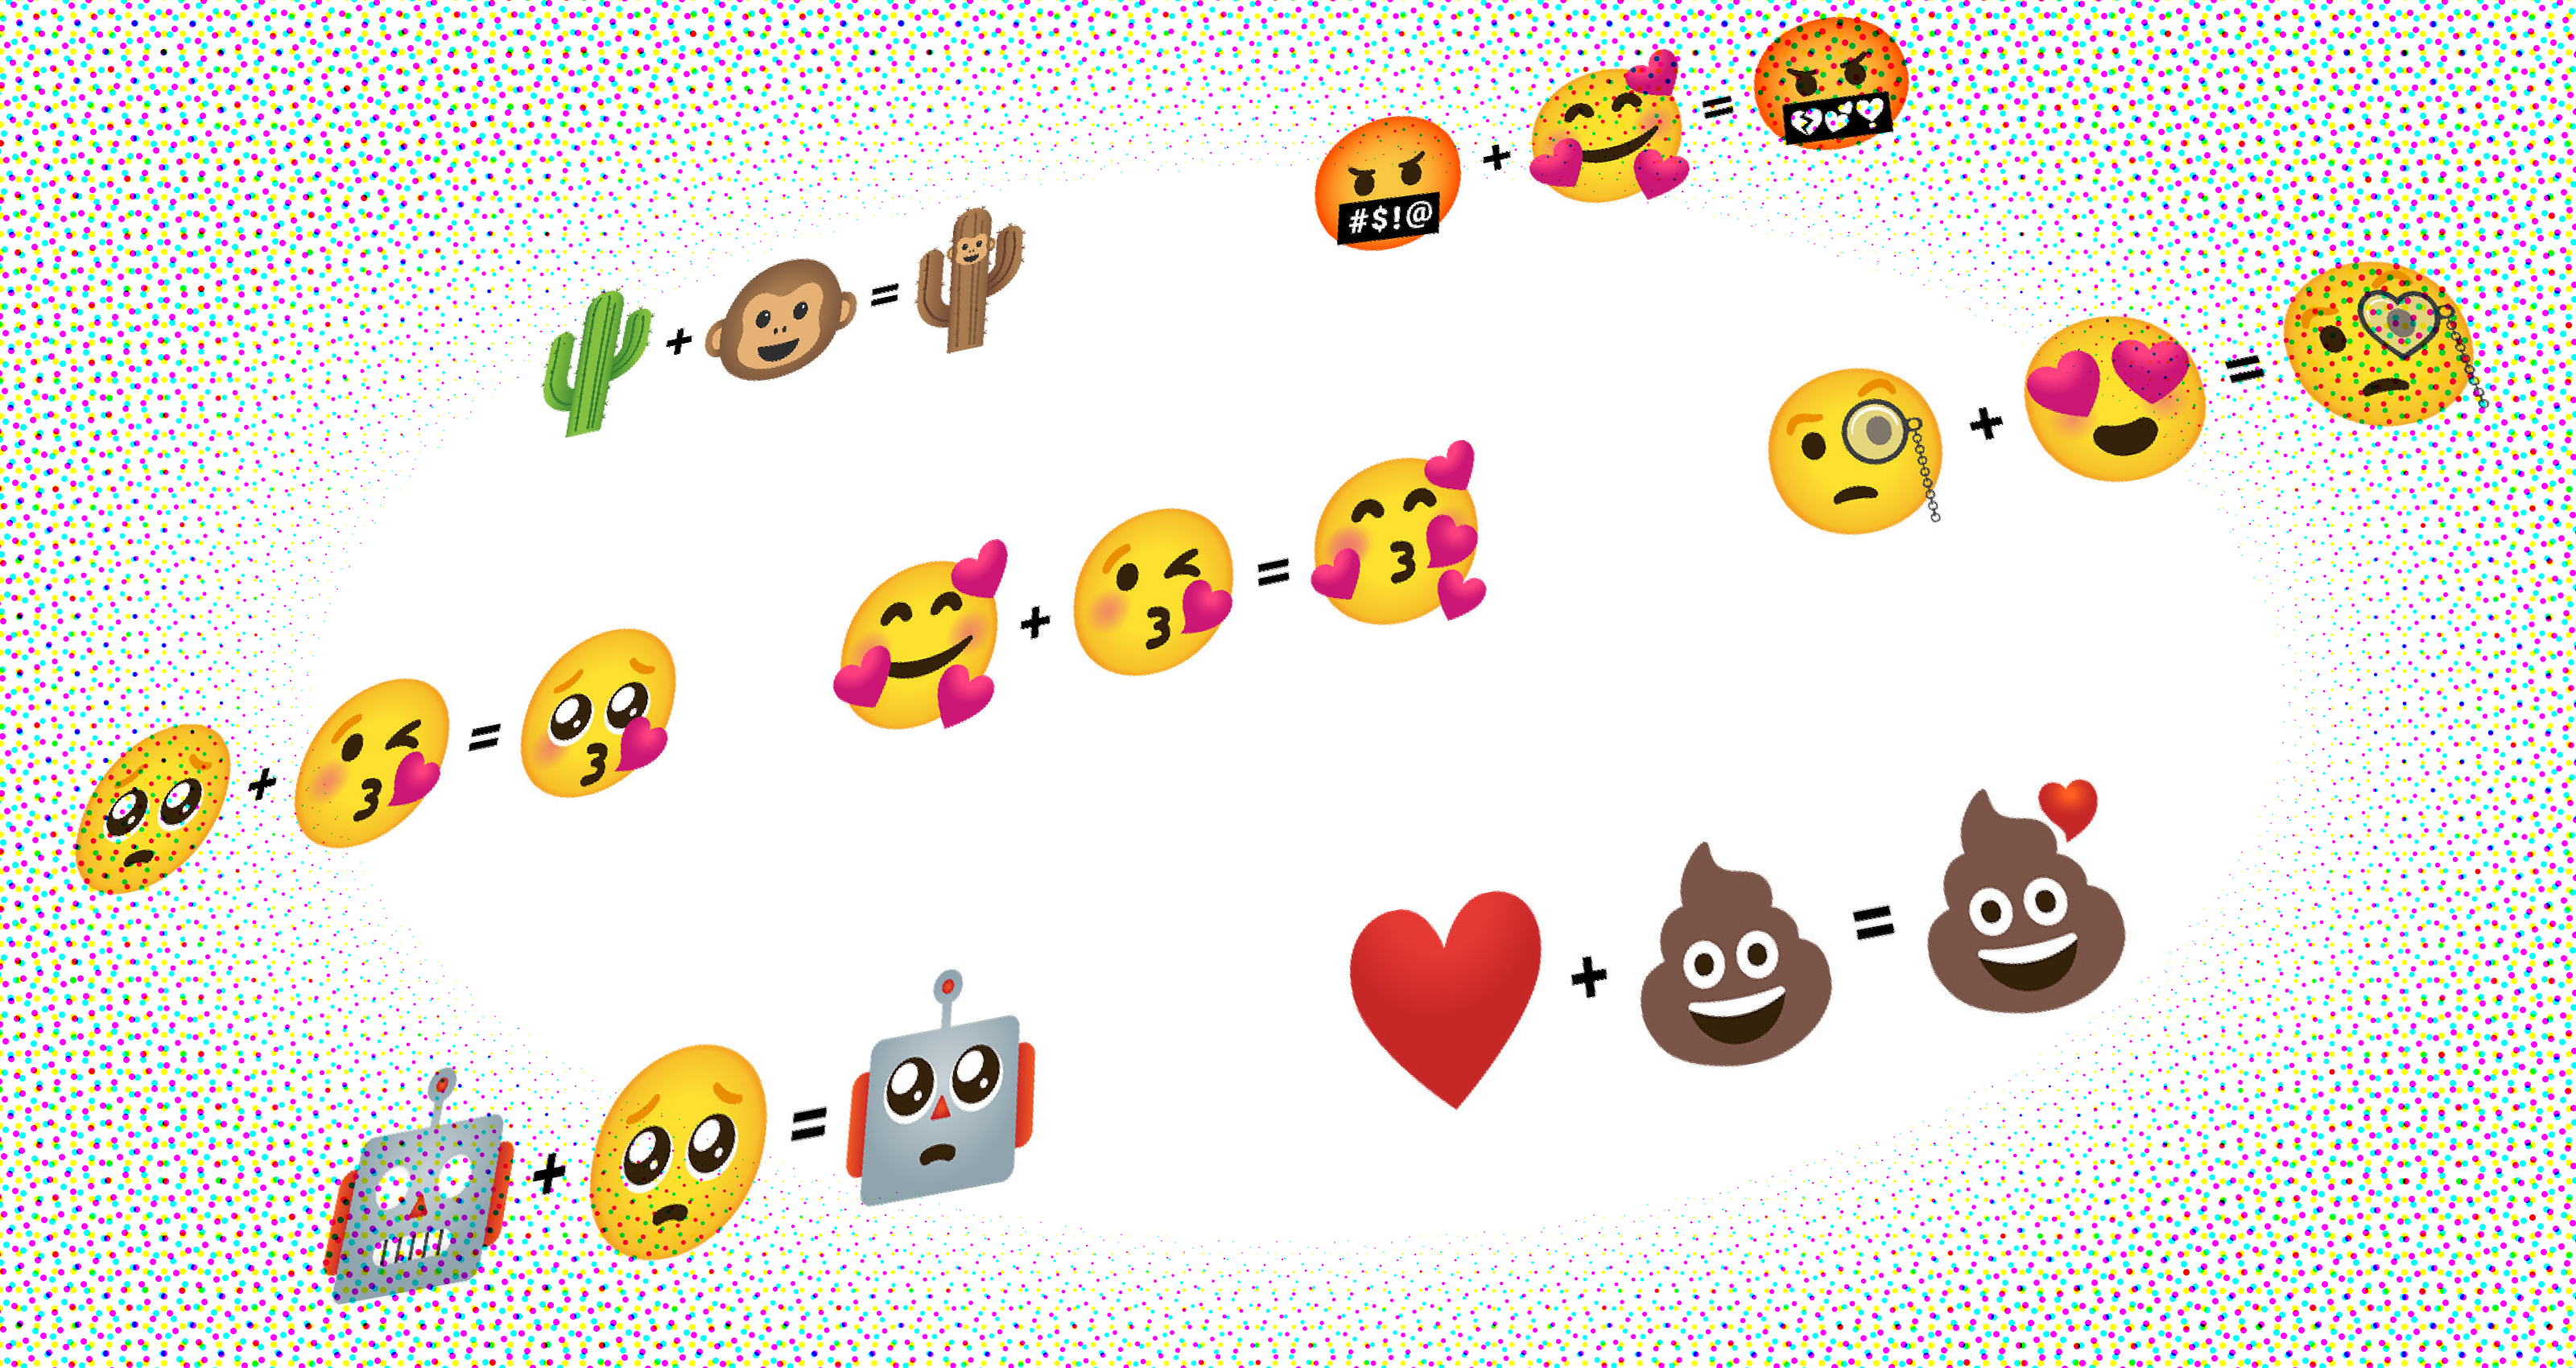 Google S Gboard Introduces Emoji Kitchen A Tool To Mash Up Emojis To Use As Stickers Techcrunch